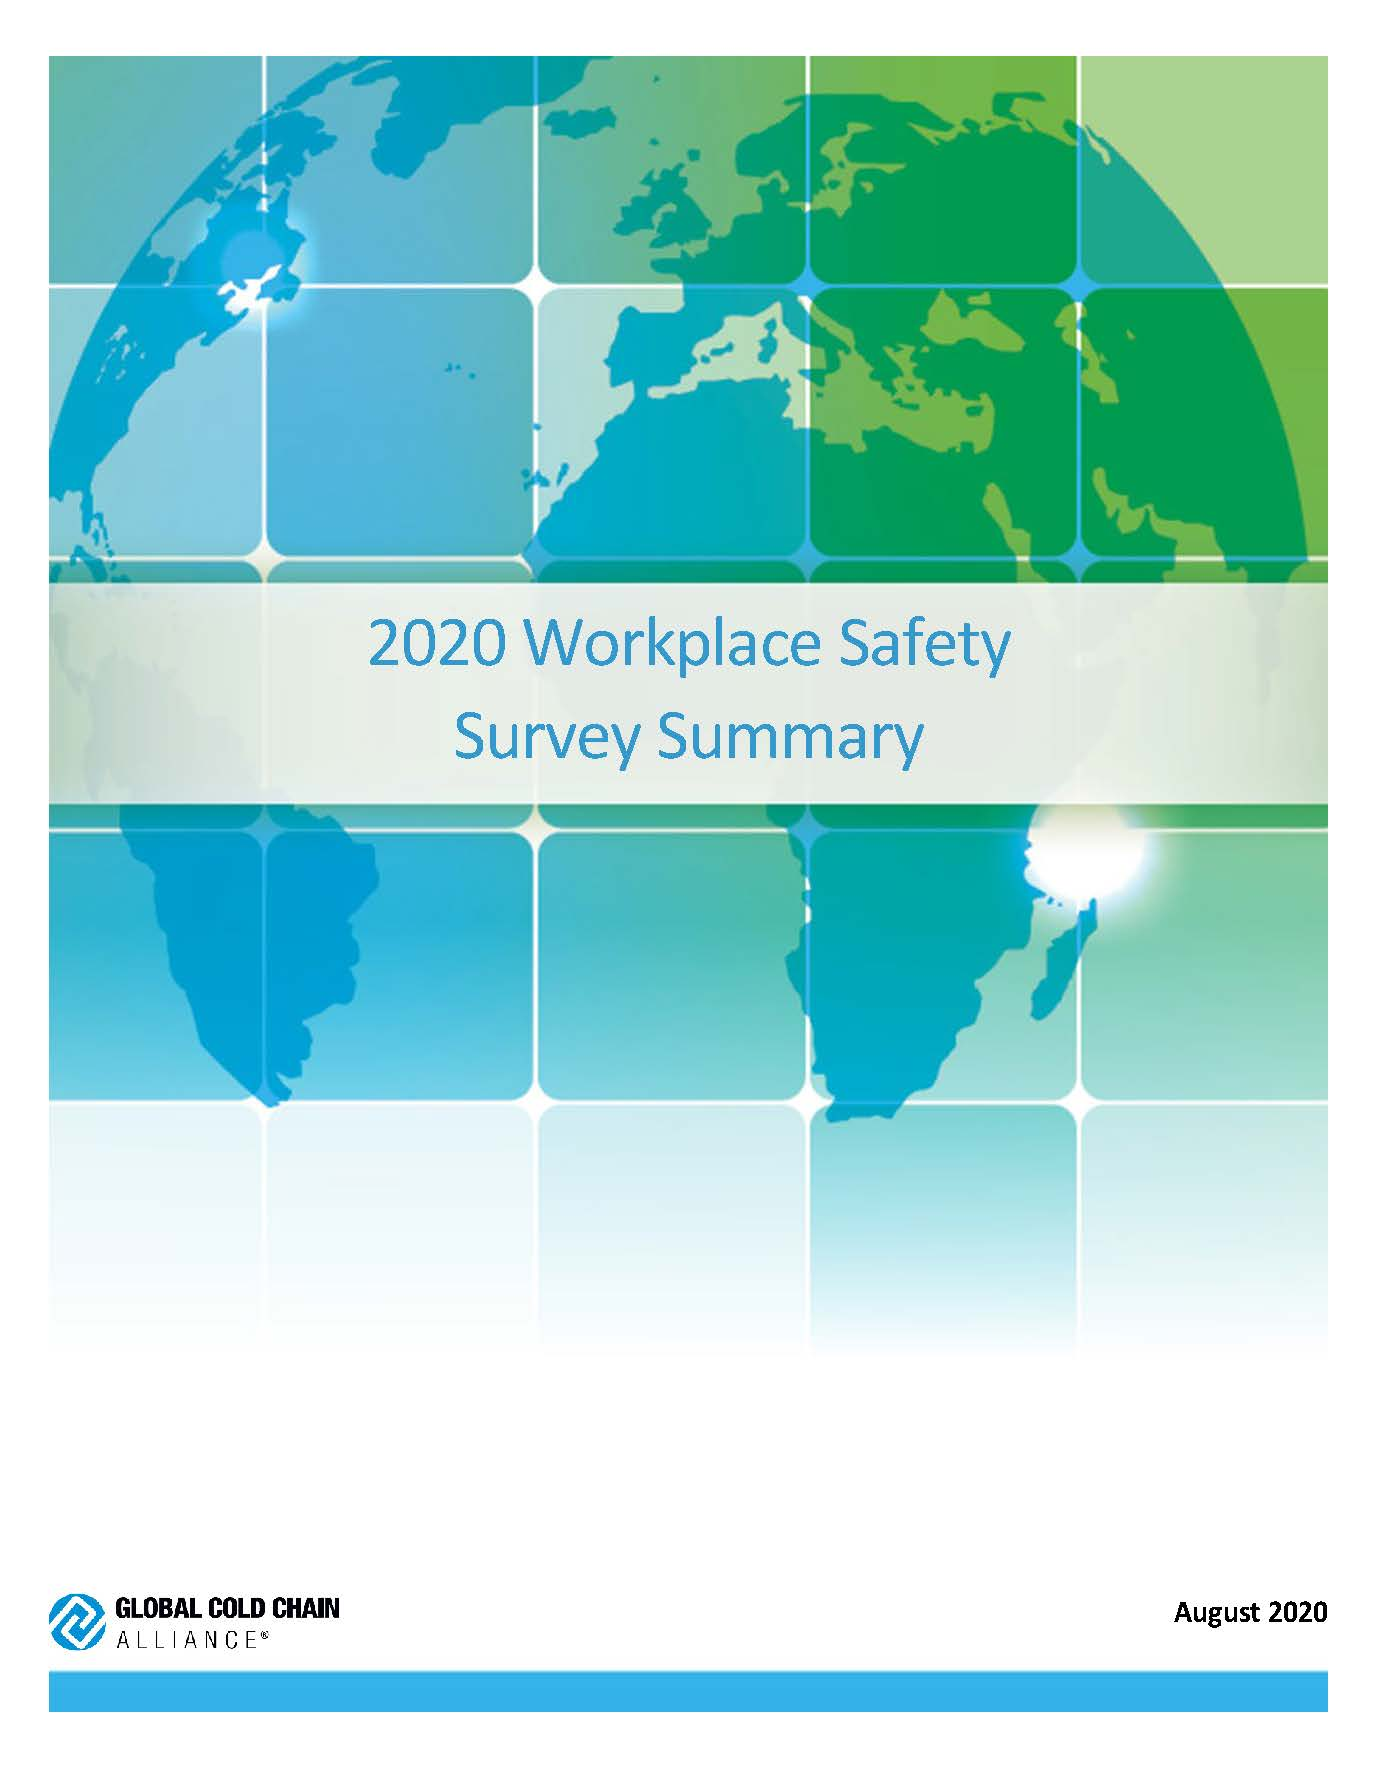 2020 Workplace Safety Survey